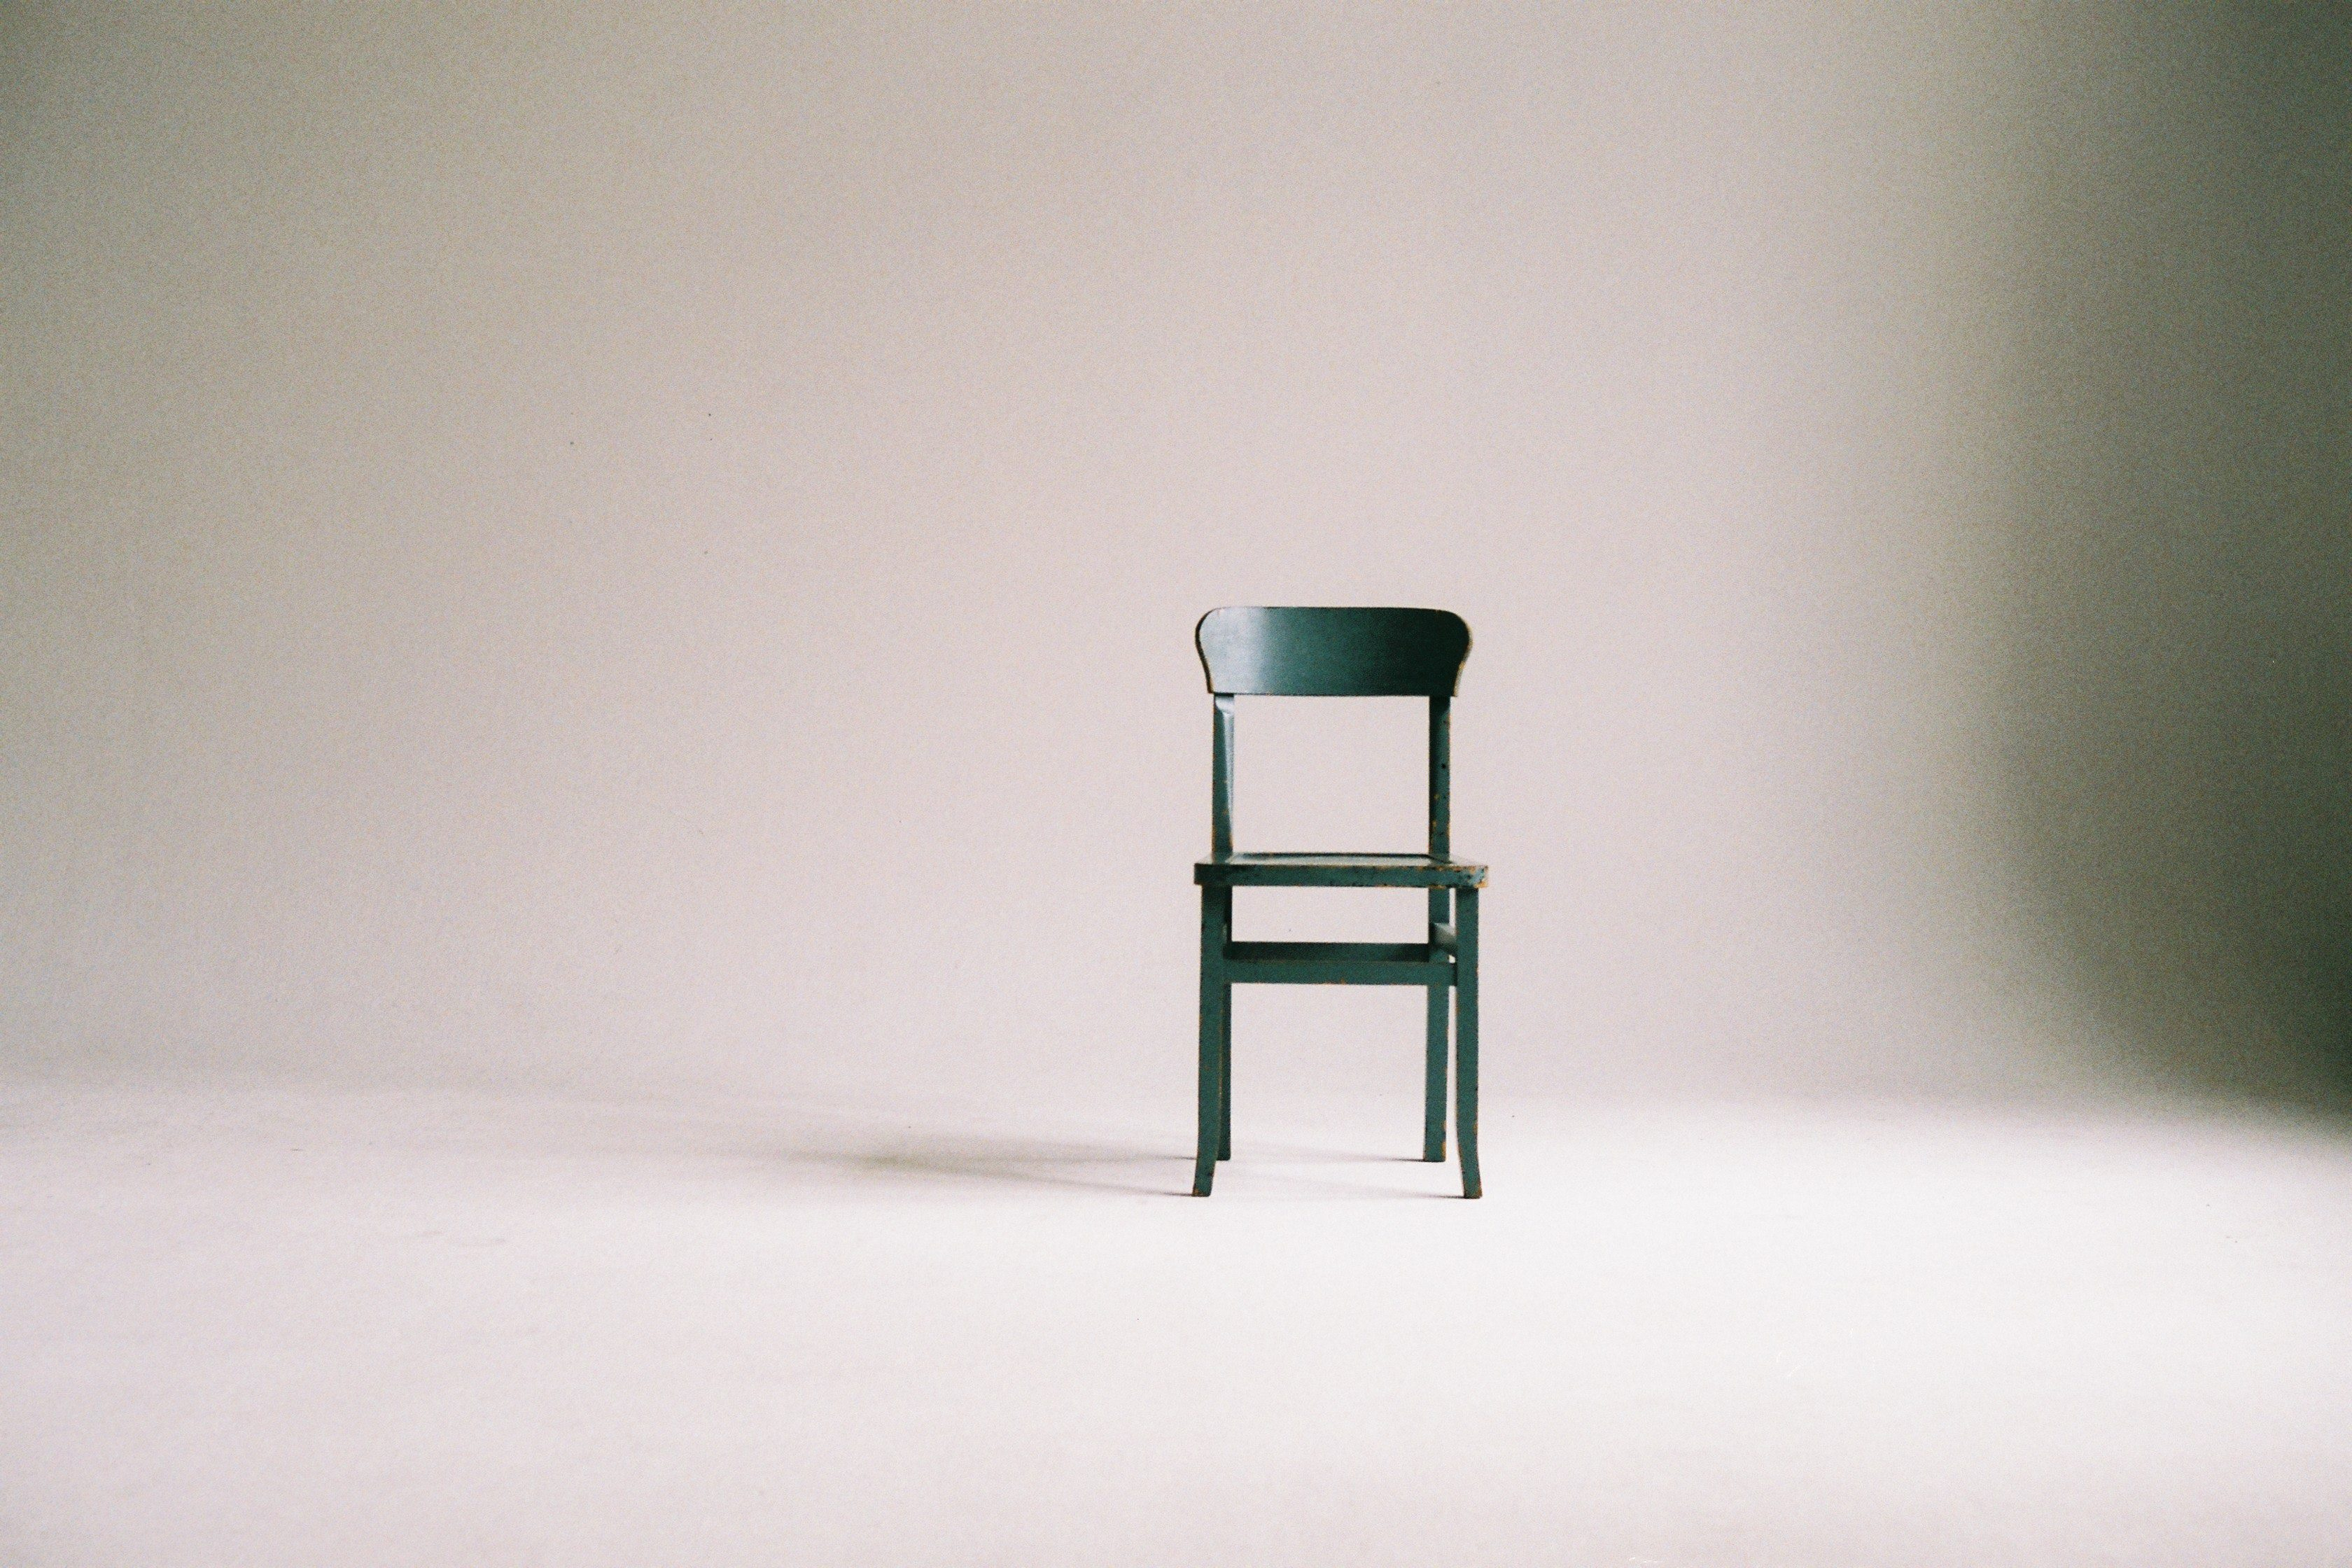 Green Wooden Chair in white empty room